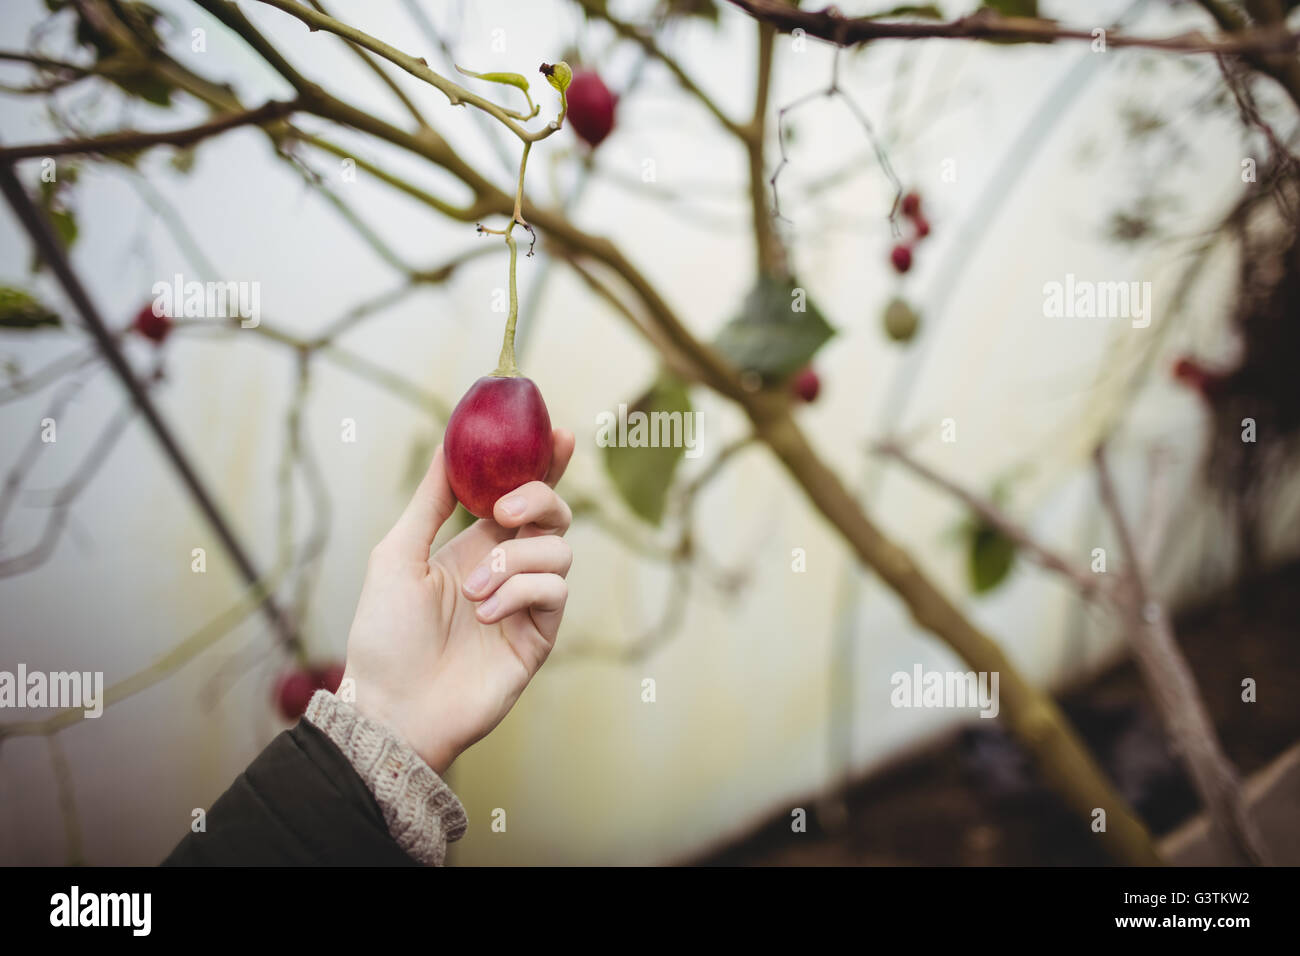 Cropped image of hipster man picking a plum - Stock Image